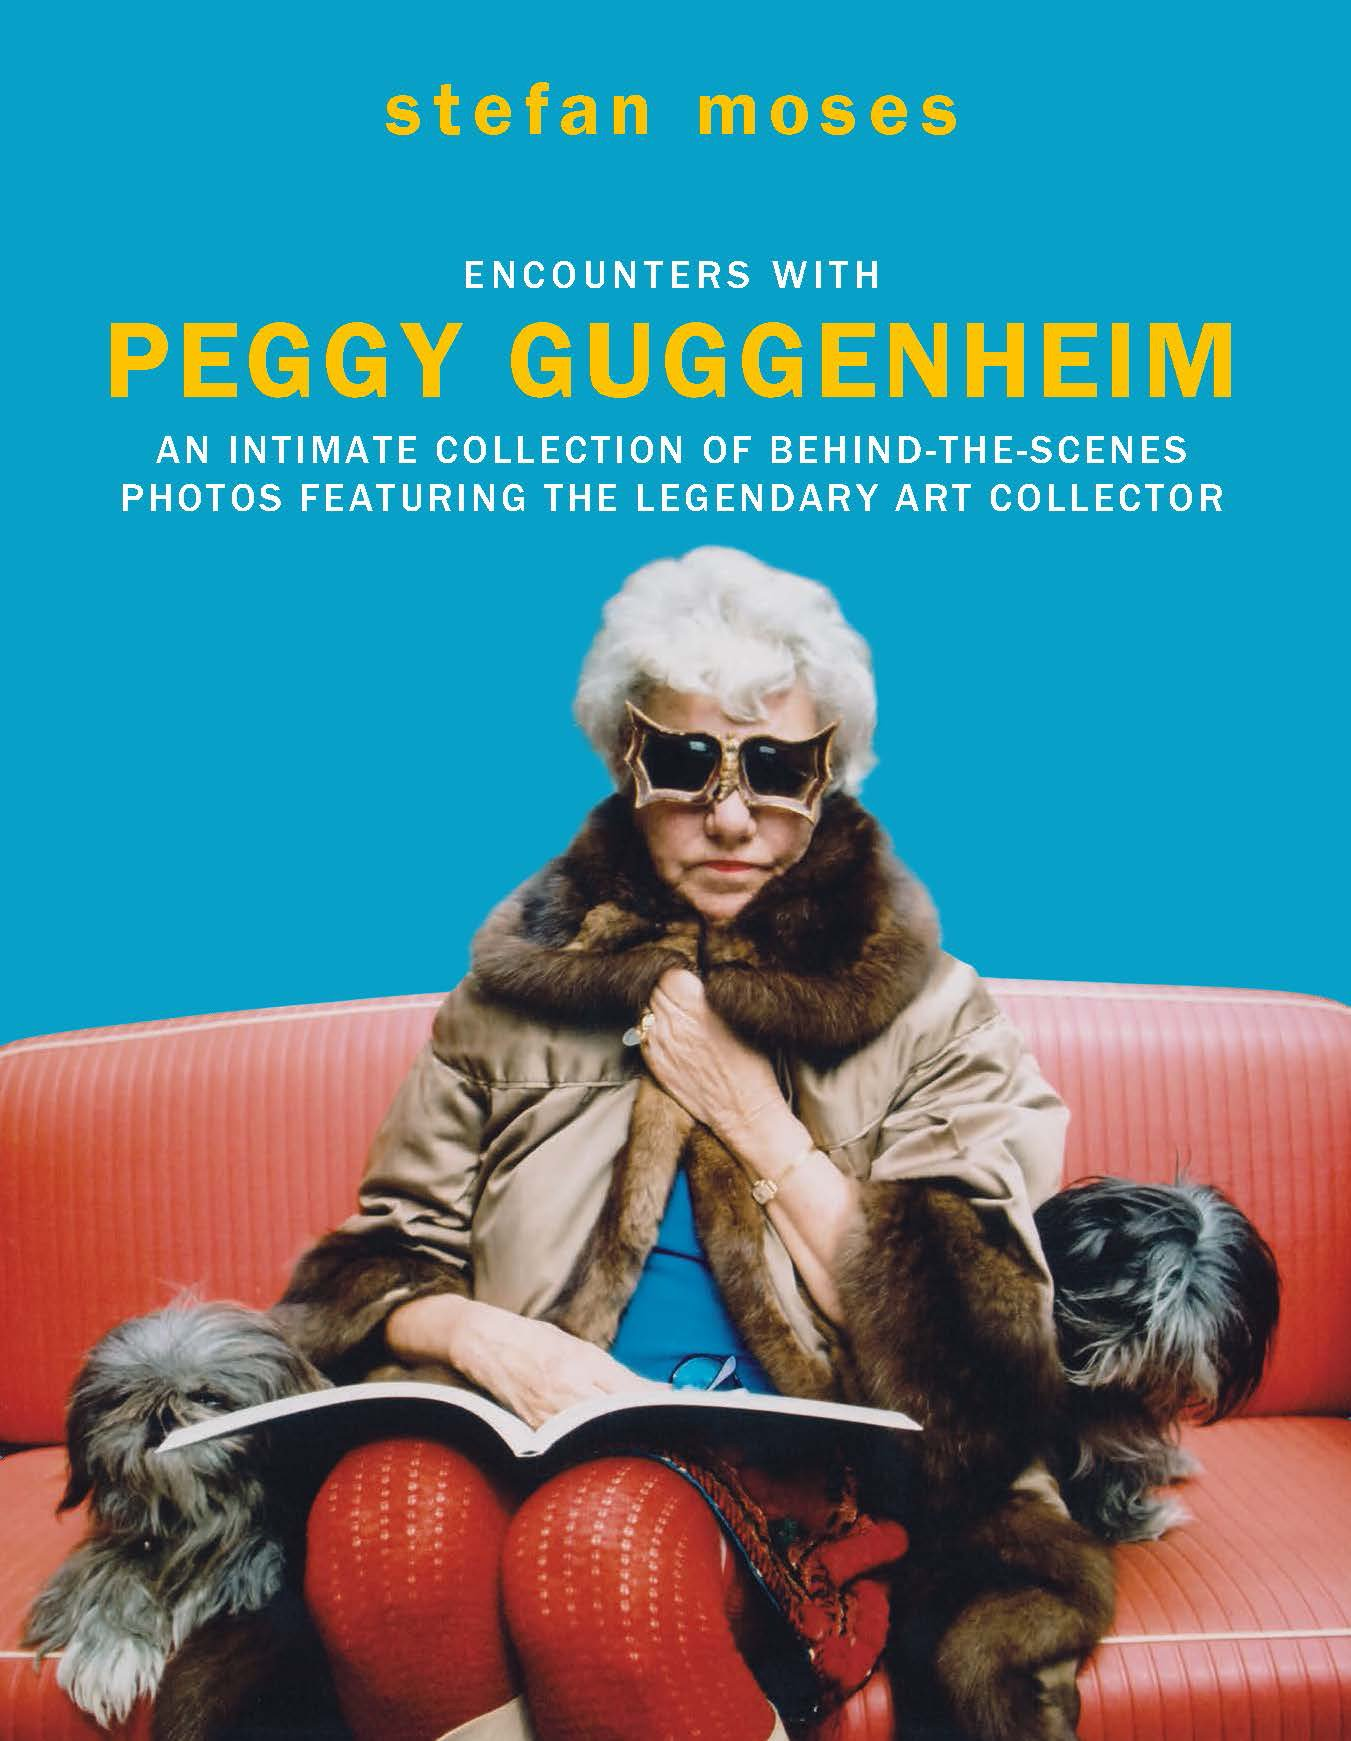 Encounters with Peggy Guggenheim: An intimate collection of behind-the-scenes photos featuring the legendary art collector